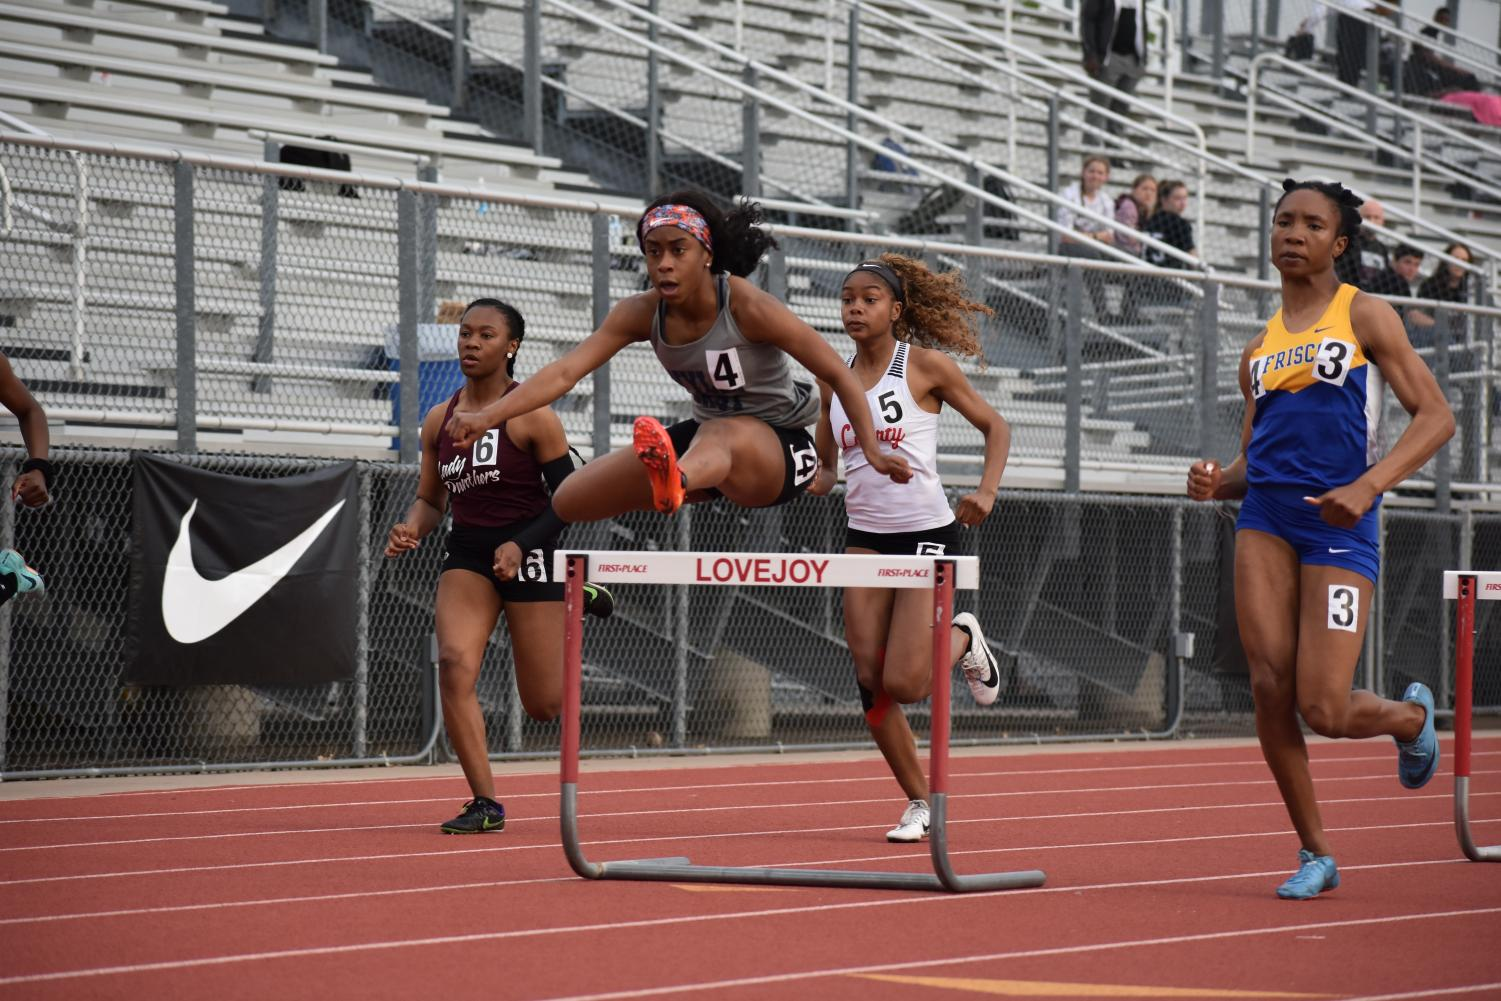 Leaps and bounds // Junior Destini Jeter becomes the girls' 300m hurdles Area Champion at the Area Track meet held in the Lovejoy ISD stadium. Jeter automatically qualifies for the Region II-5A Championship meet April 26-27.